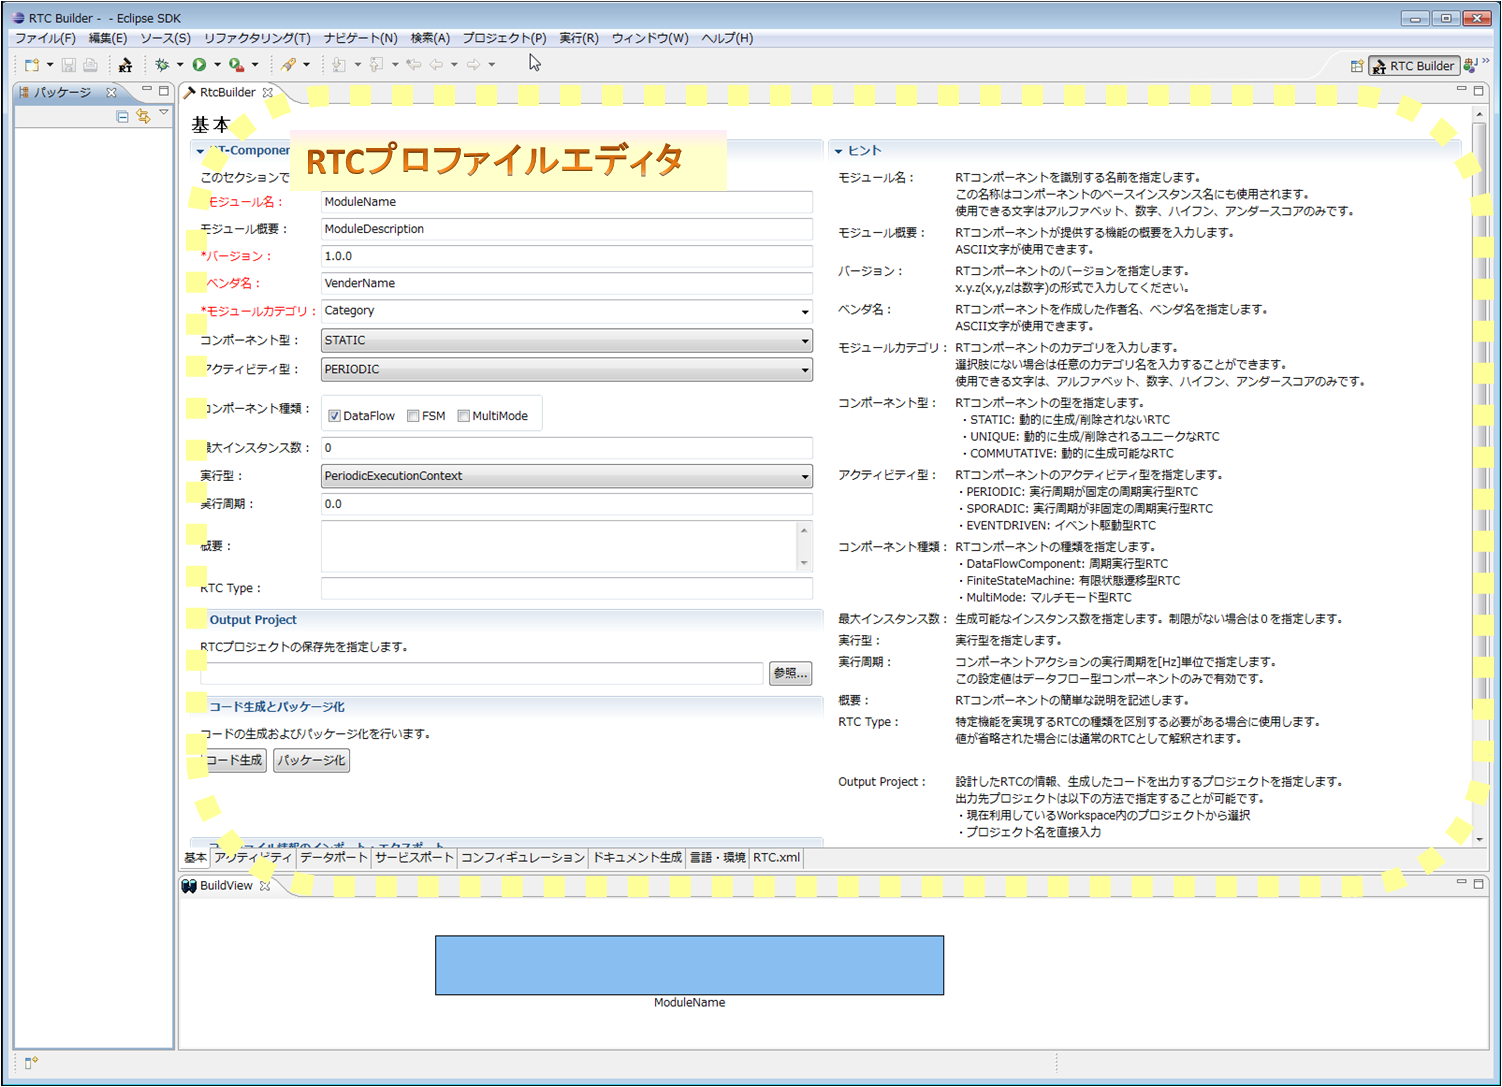 fig3-2RTProfileEditor_ja.png